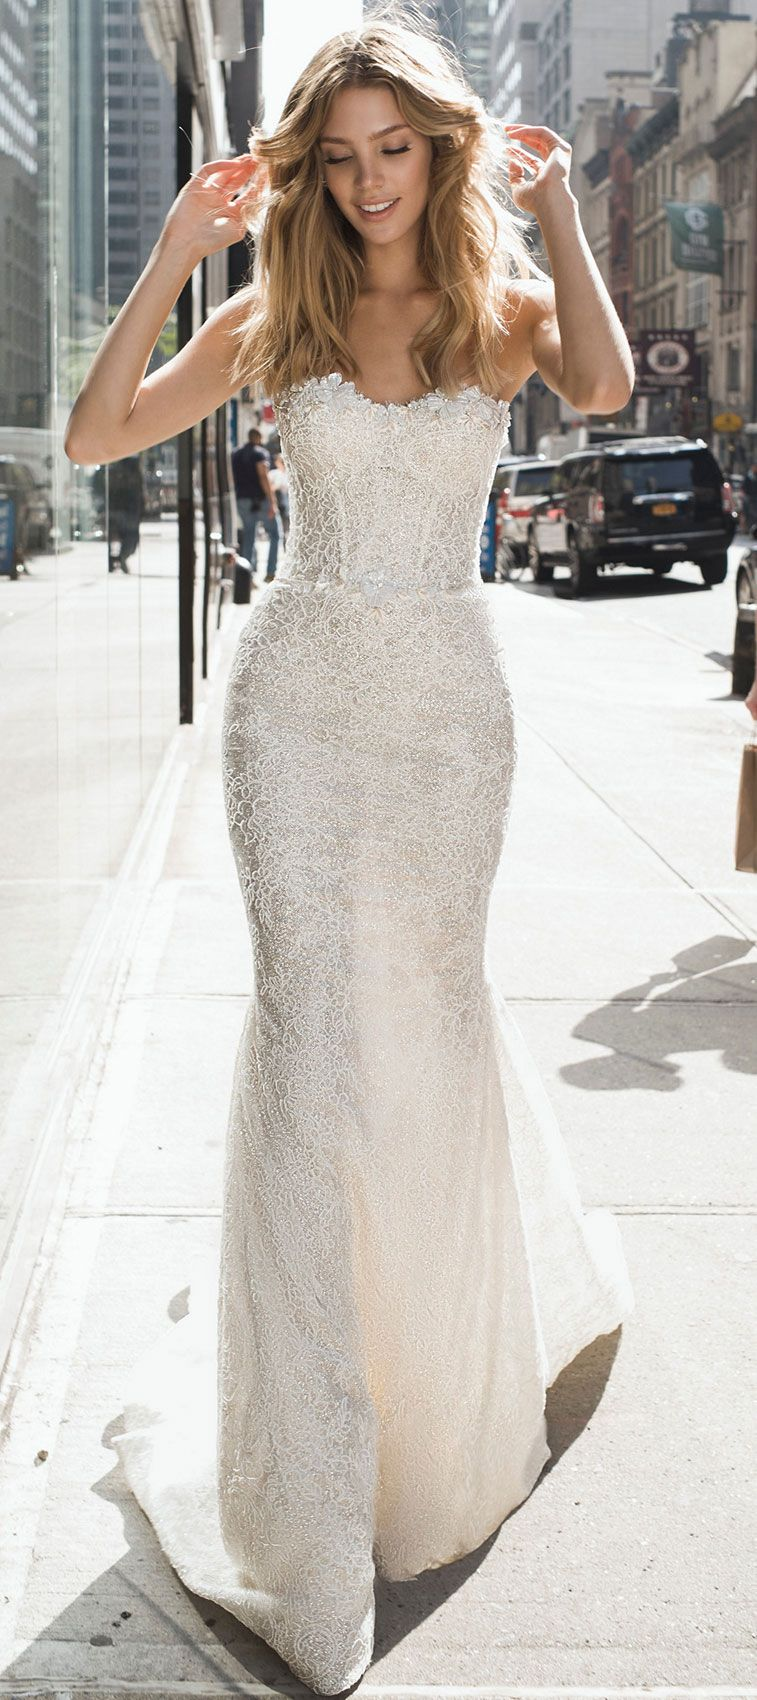 Seductive Wedding Dress Inspiration